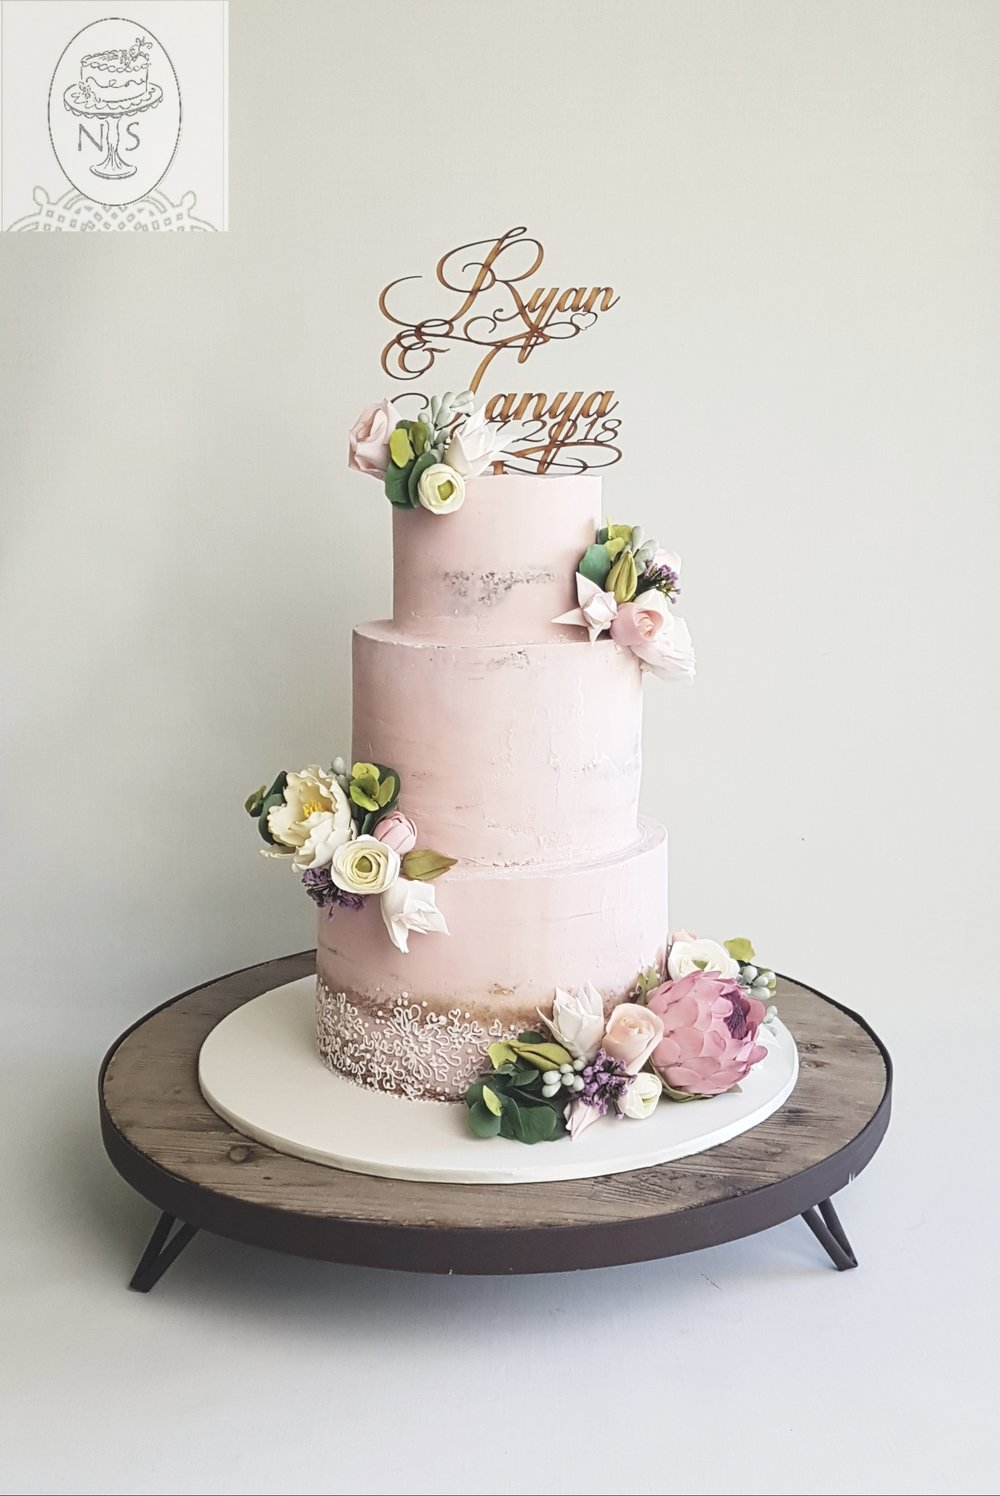 Nicky Svensen Cakes - Completely self-taught, I began making cakes about eight years ago, focusing predominantly on wedding cakes in the last couple of years. My cakes are 'baked from scratch' using quality ingredients as it's really important to me that my cakes taste as good as they look. My specialty is creating beautiful lifelike sugar flowers and foliage which feature in most of my cakes. The process of designing a wedding cake usually starts when I sit down with the couple many months before the wedding and, for me, there's nothing more satisfying than seeing the design become a reality on their big day.https://www.facebook.com/nickysvensencakes/https://www.instagram.com/nickysvensencakes